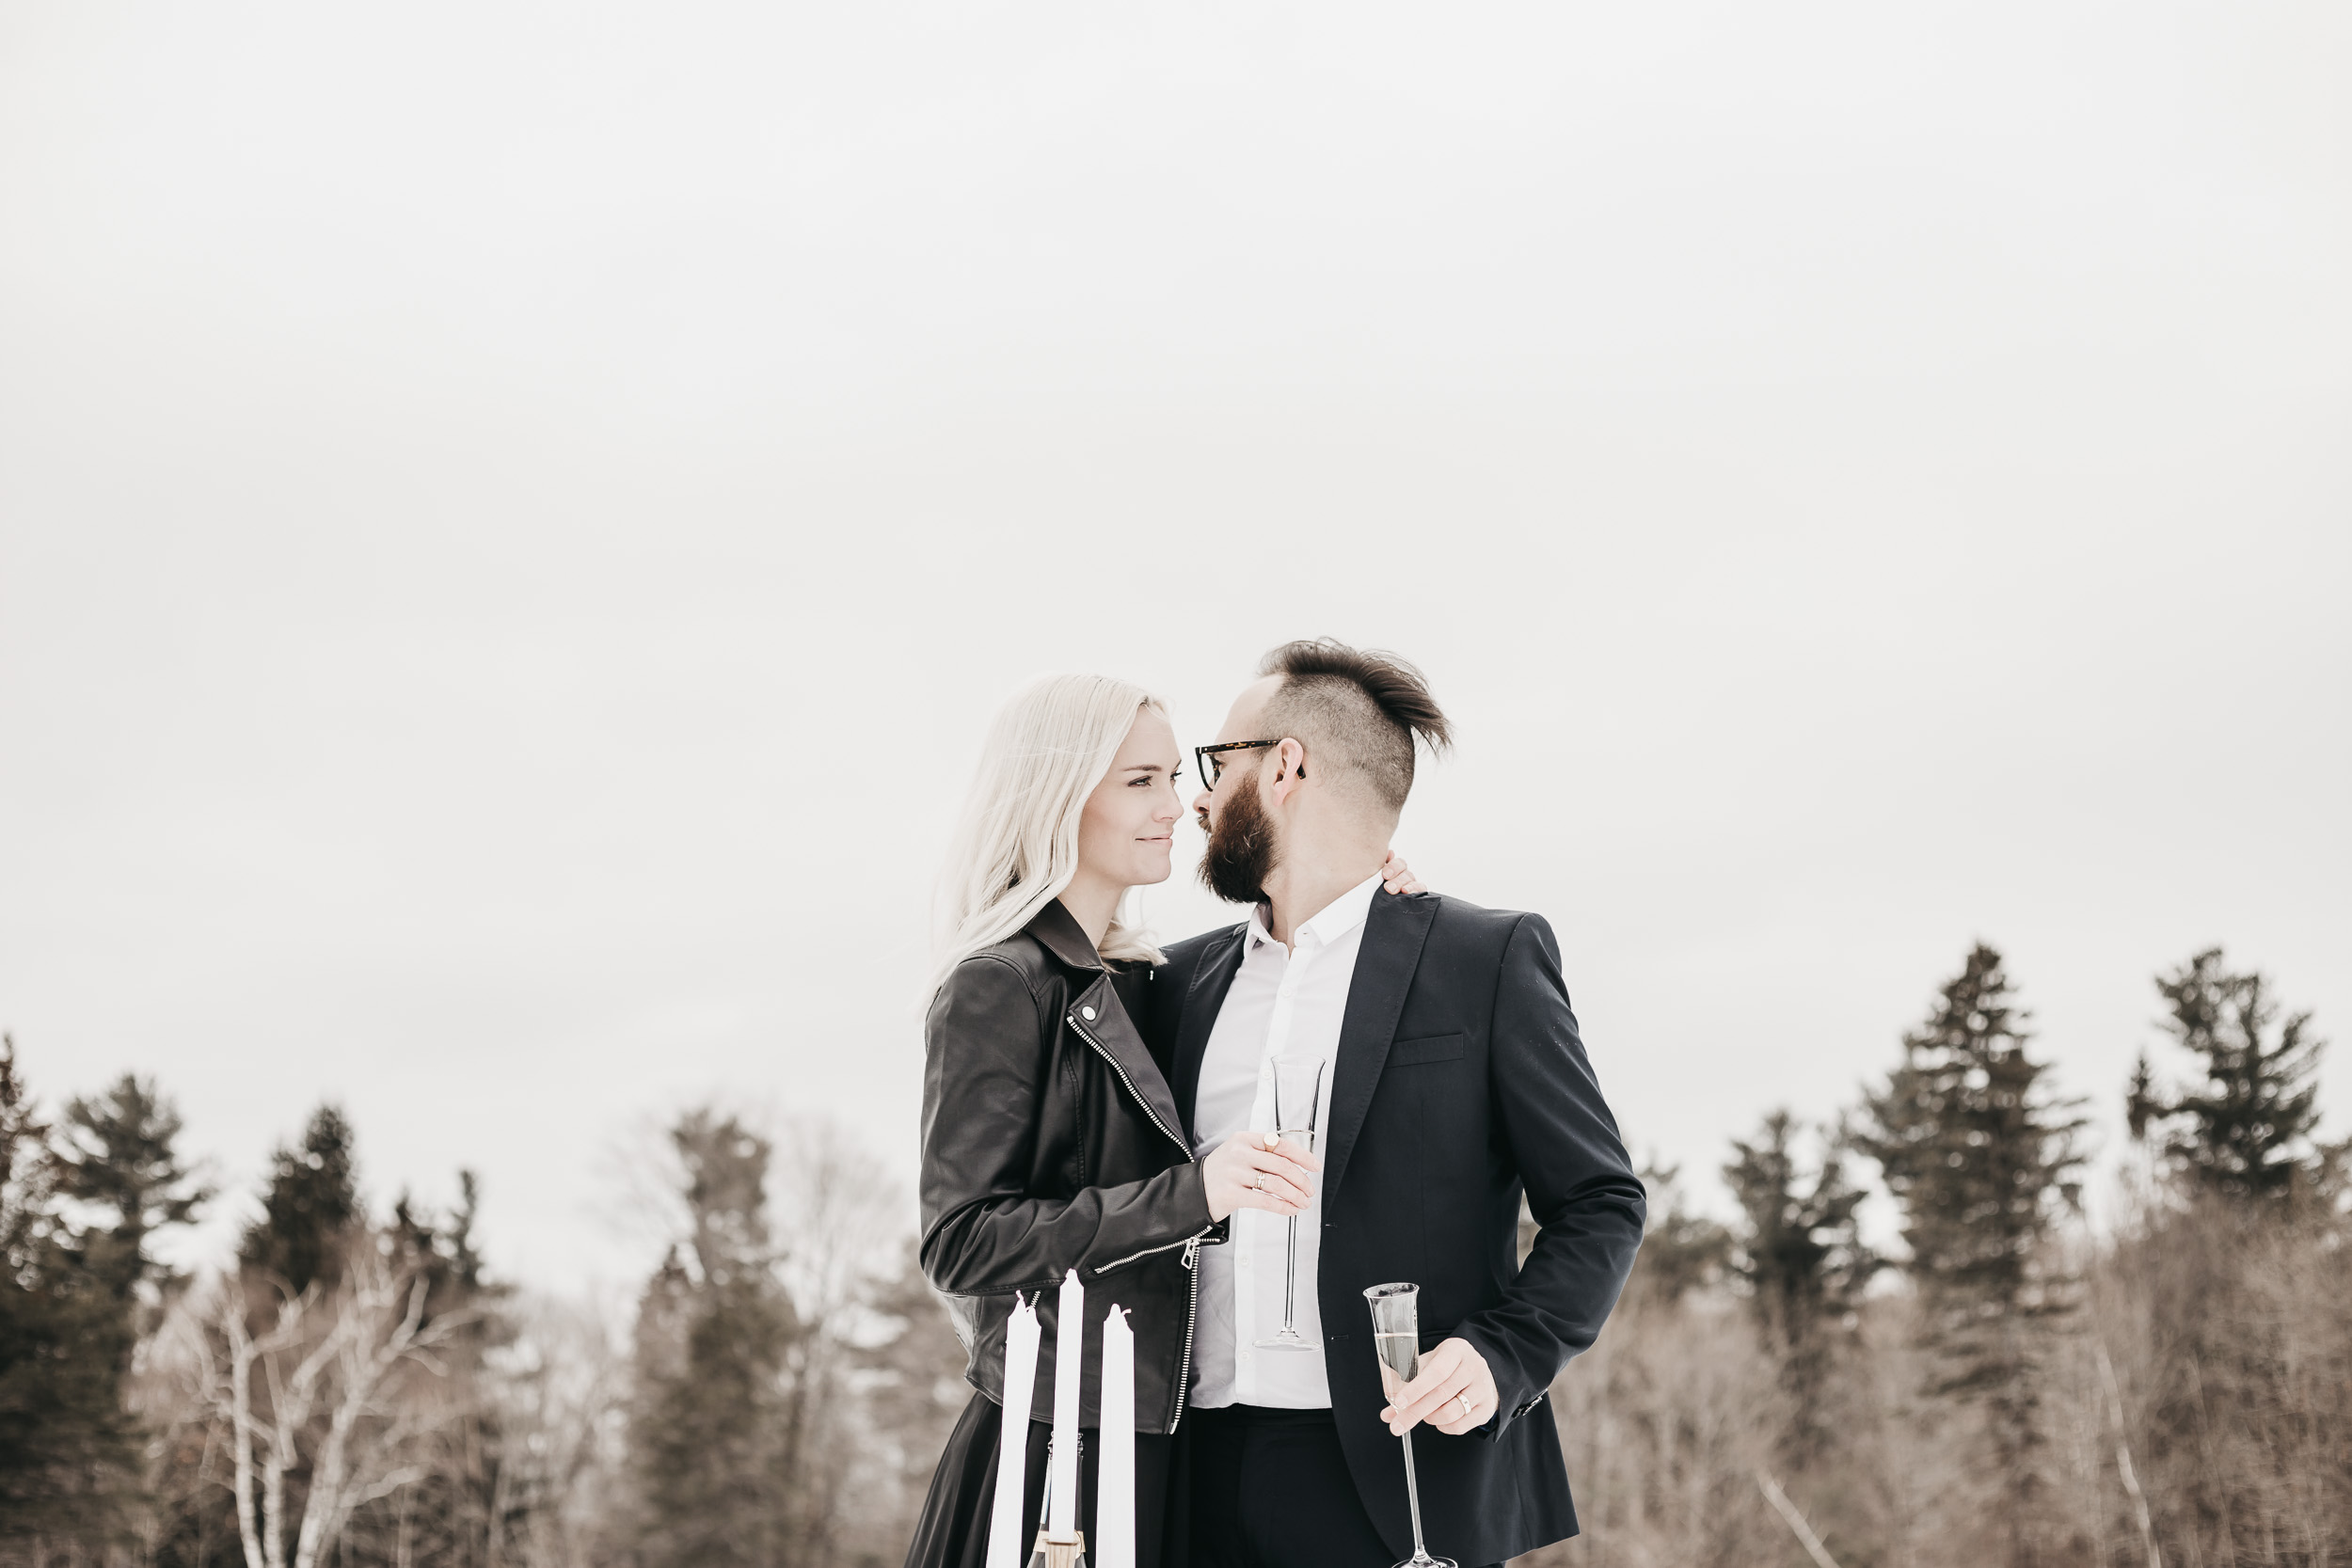 Ottawa-Elopement-Engagement-Photographer-133.jpg